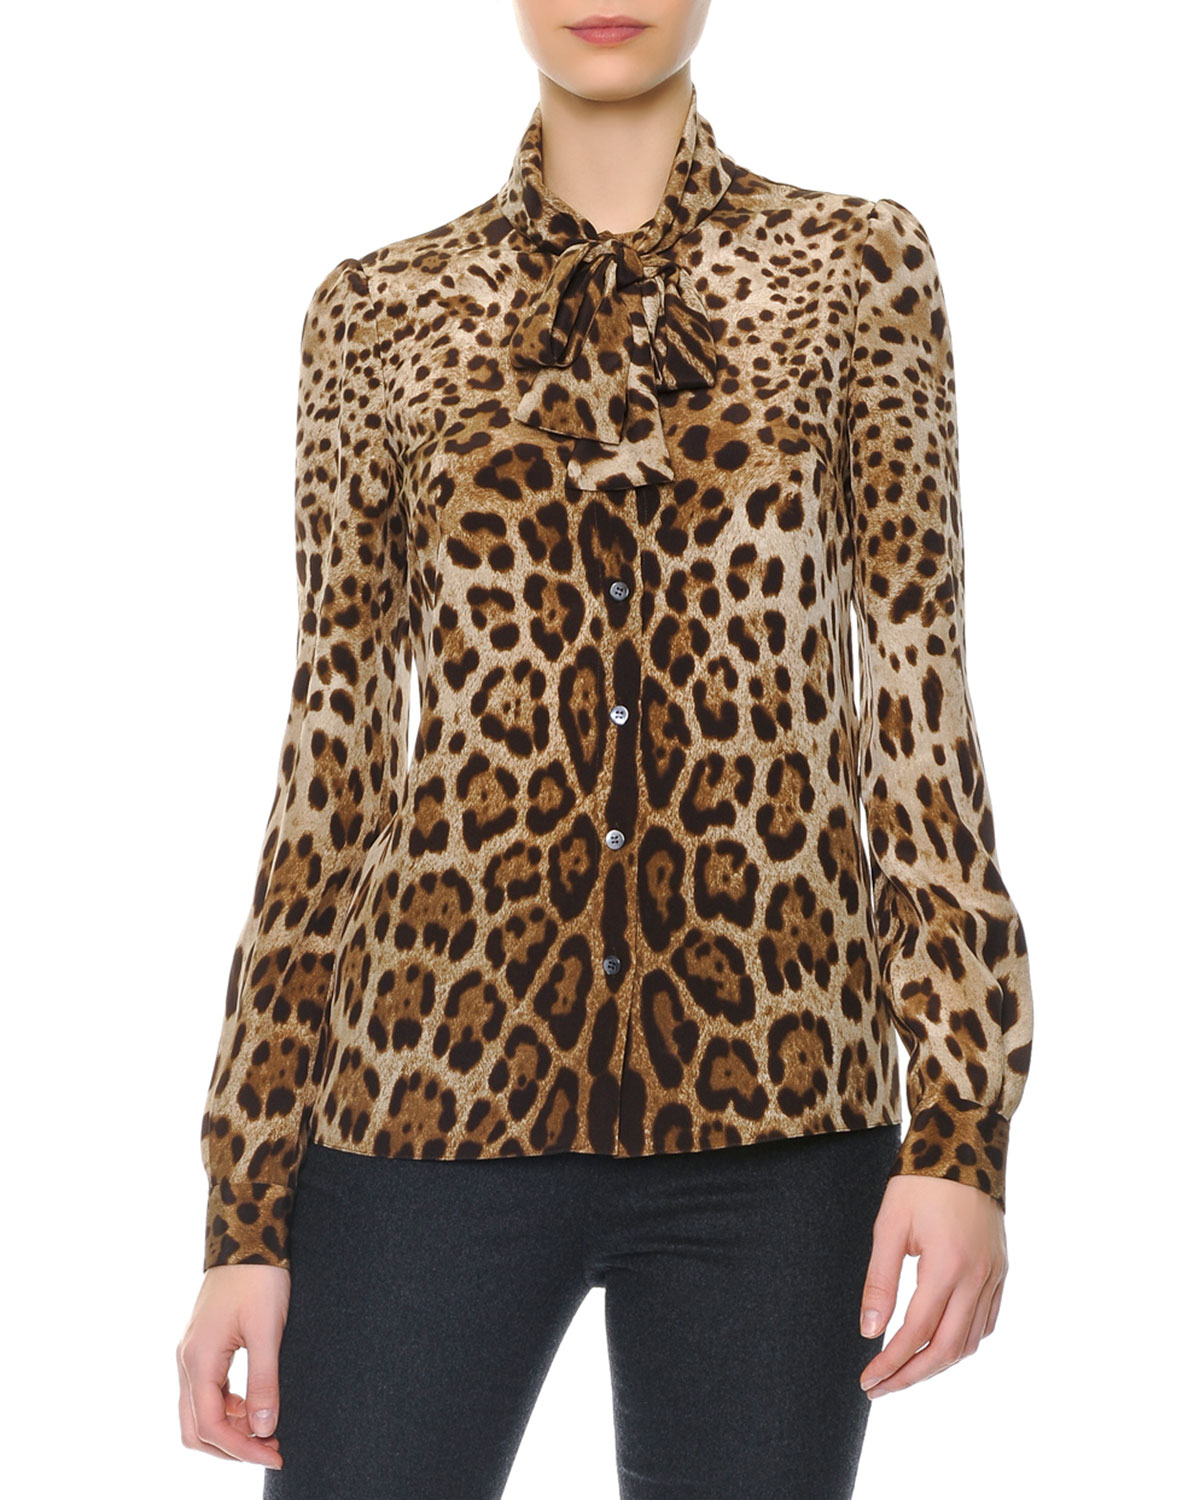 Find great deals on eBay for animal print blouses. Shop with confidence.